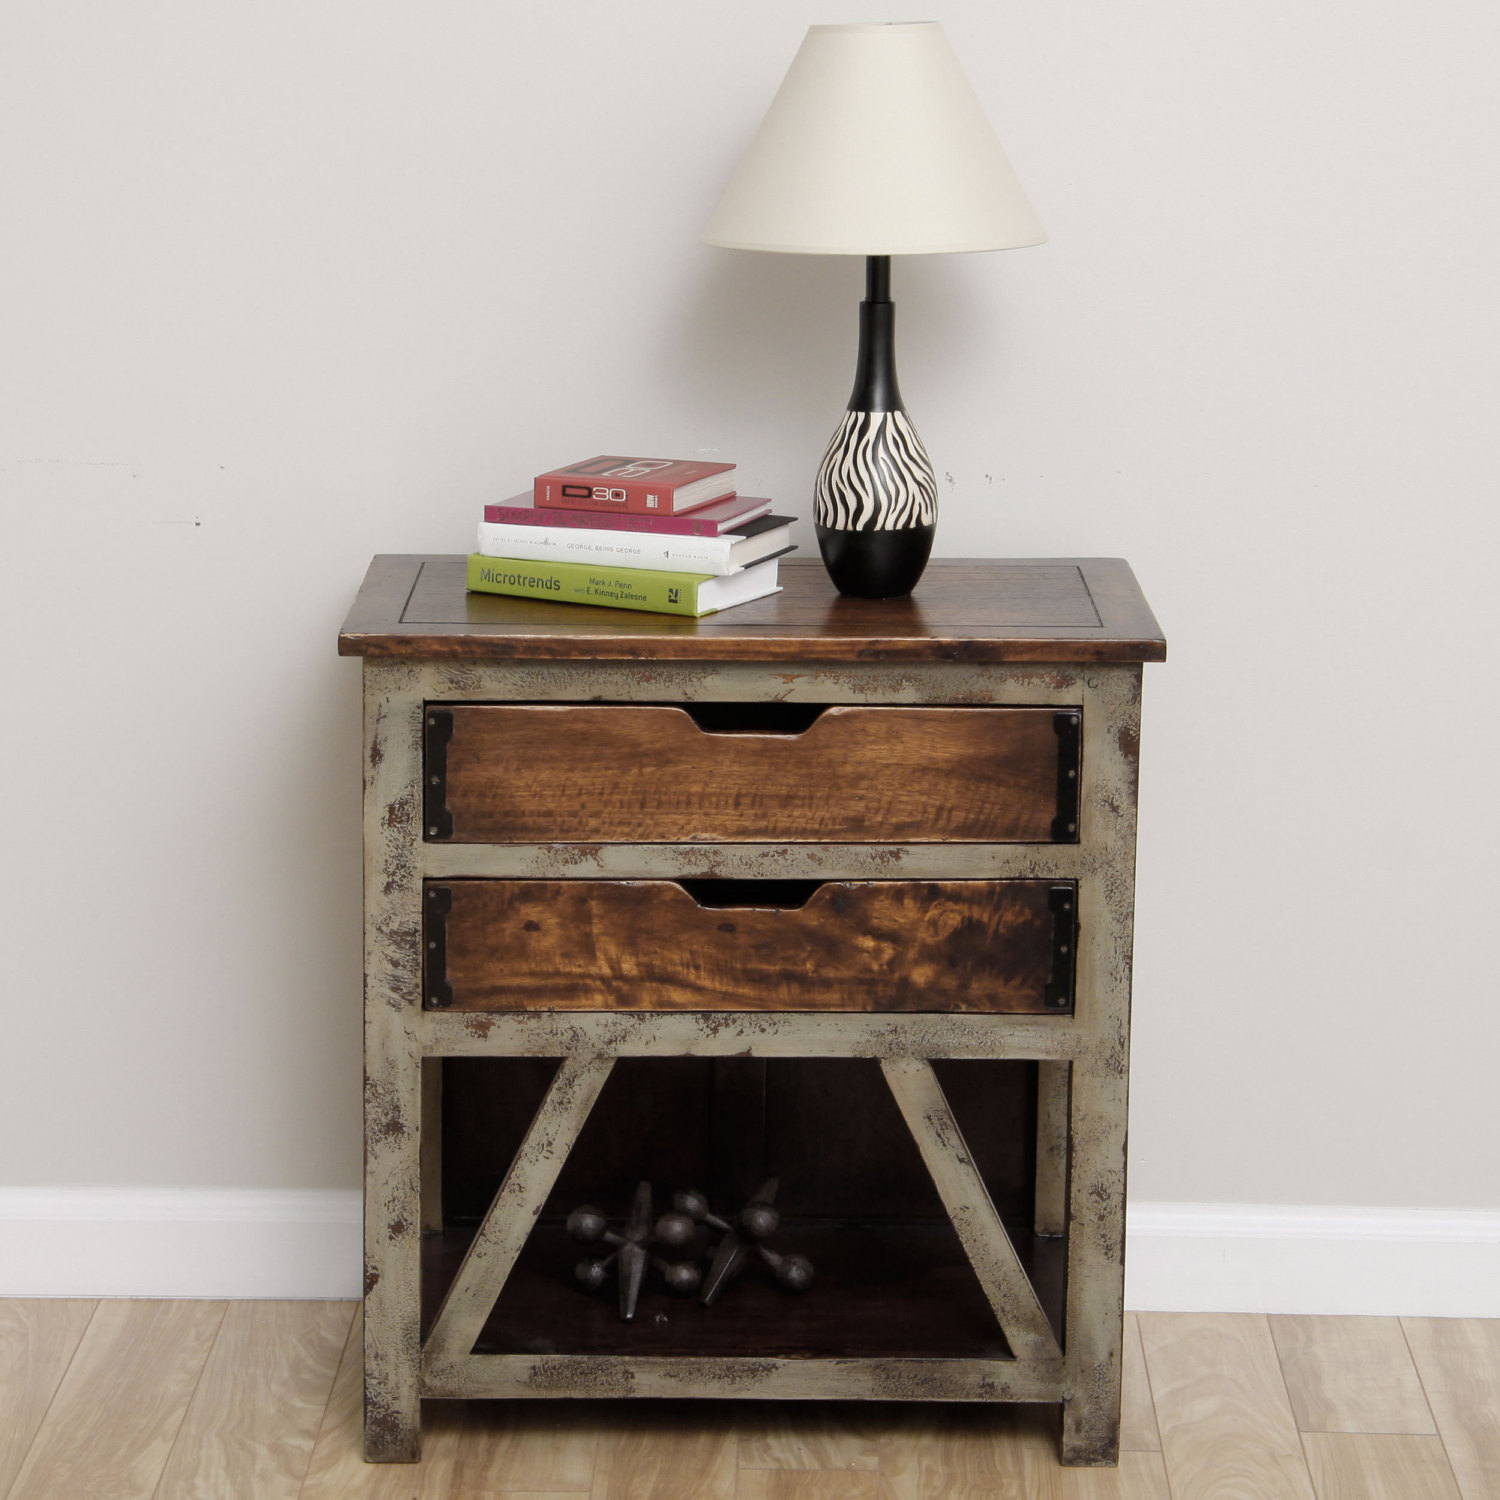 16 Classy Rustic Bedroom Designs: 17 Classy And Practical Nightstand Designs For Your Bedroom